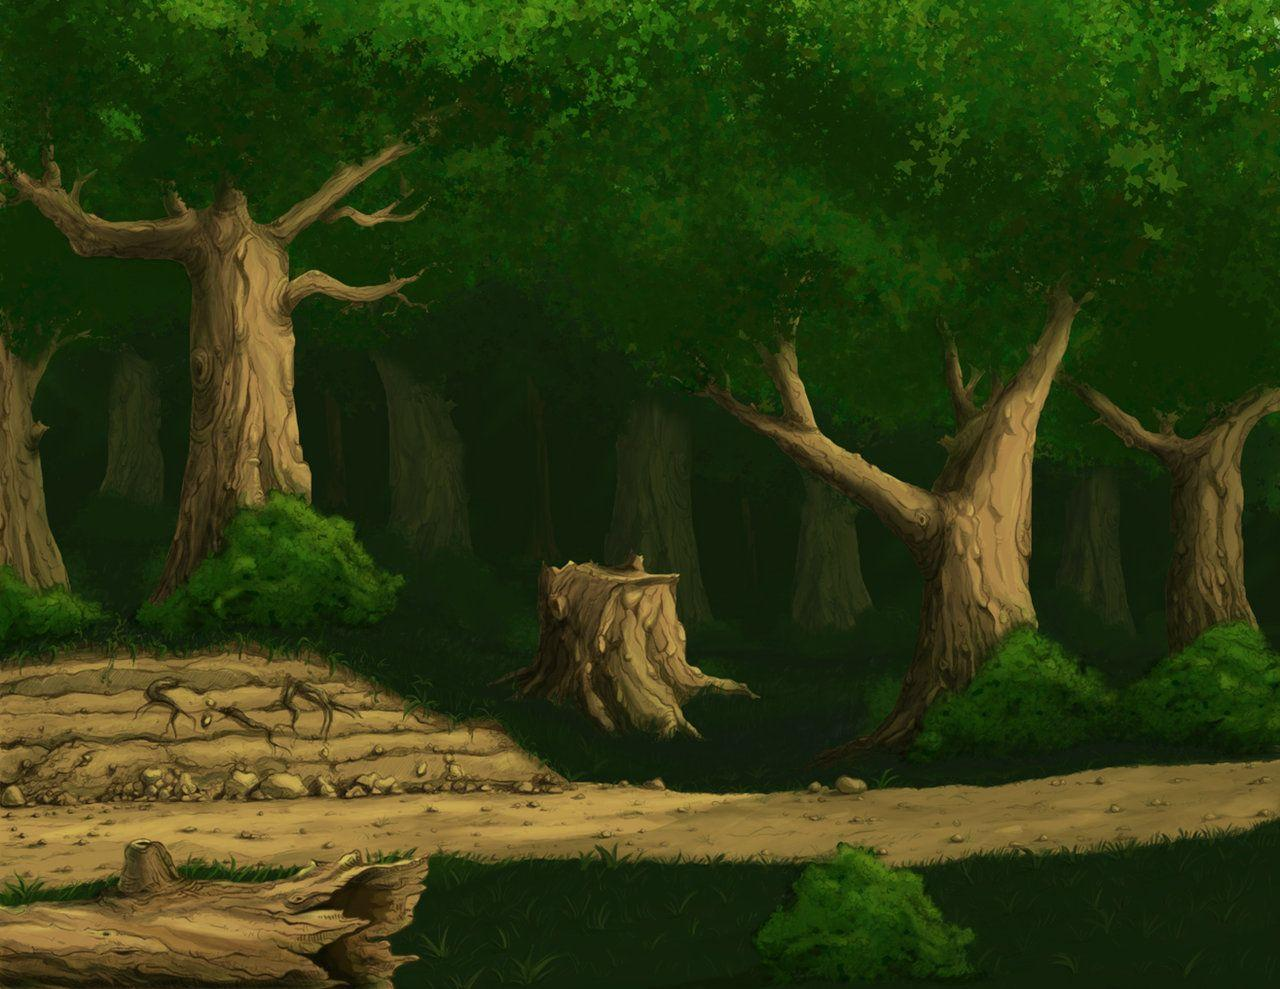 Forest Backgrounds Image - Wallpaper Cave - photo#34